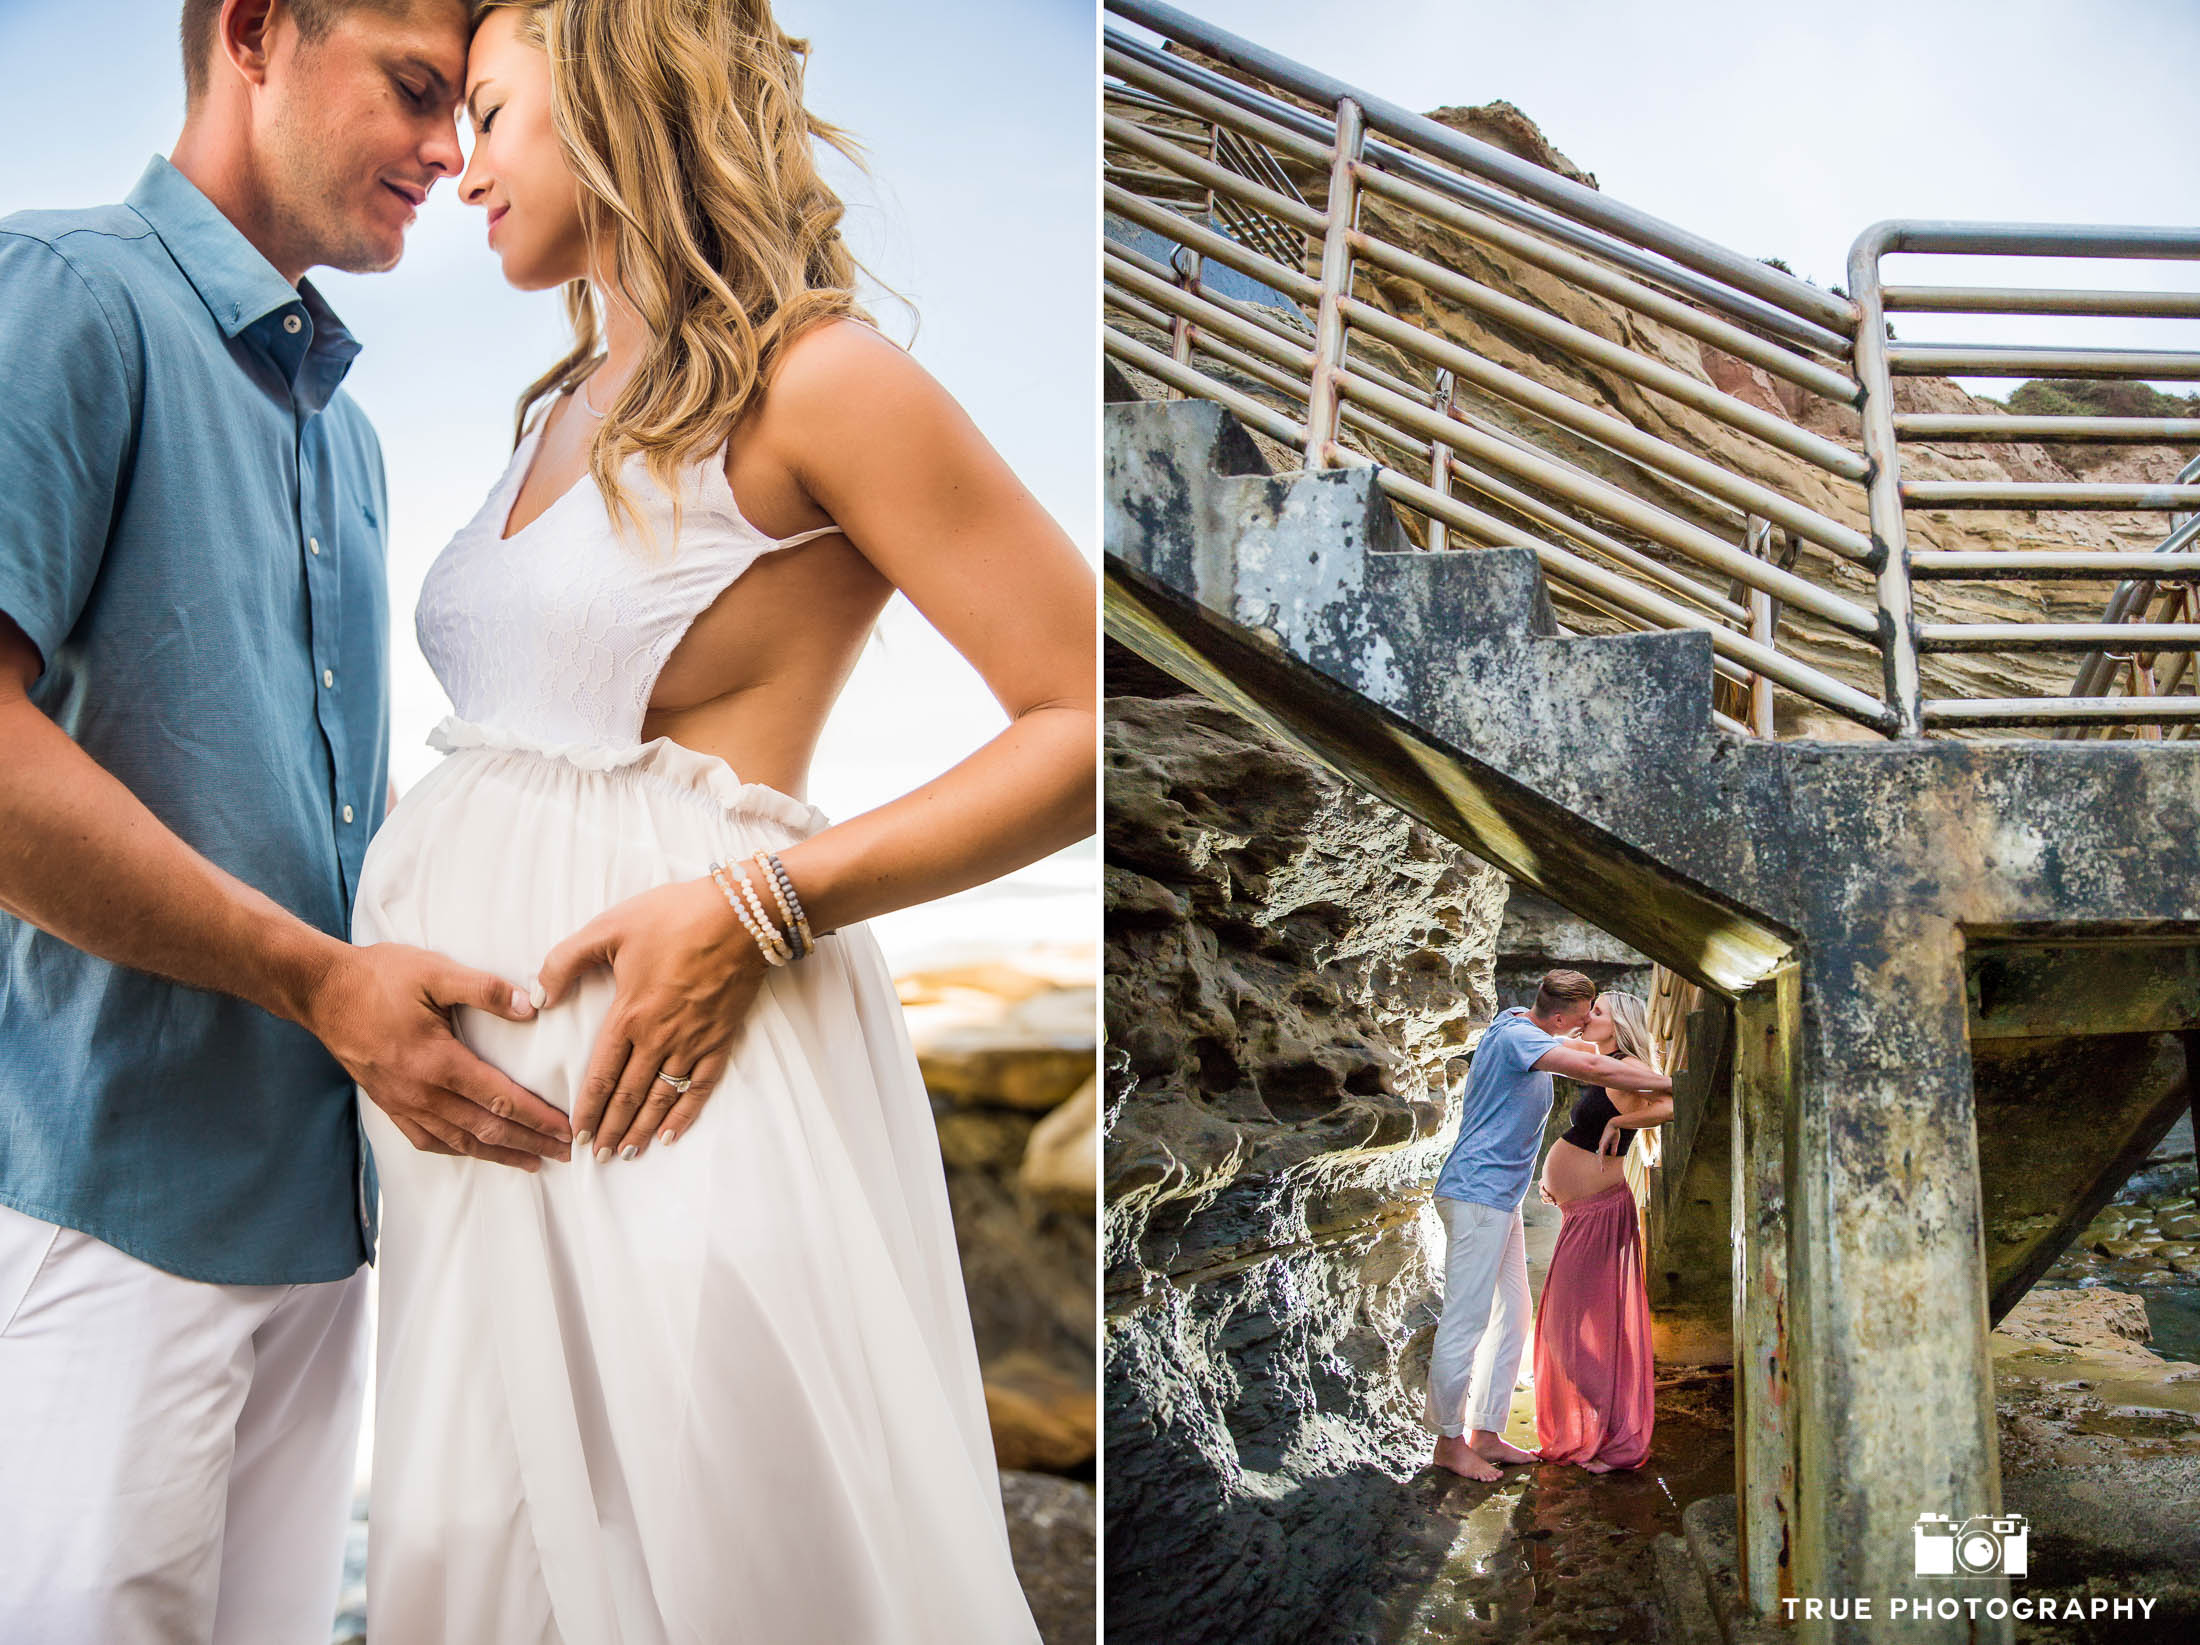 Married Couples embrace during beach maternity session